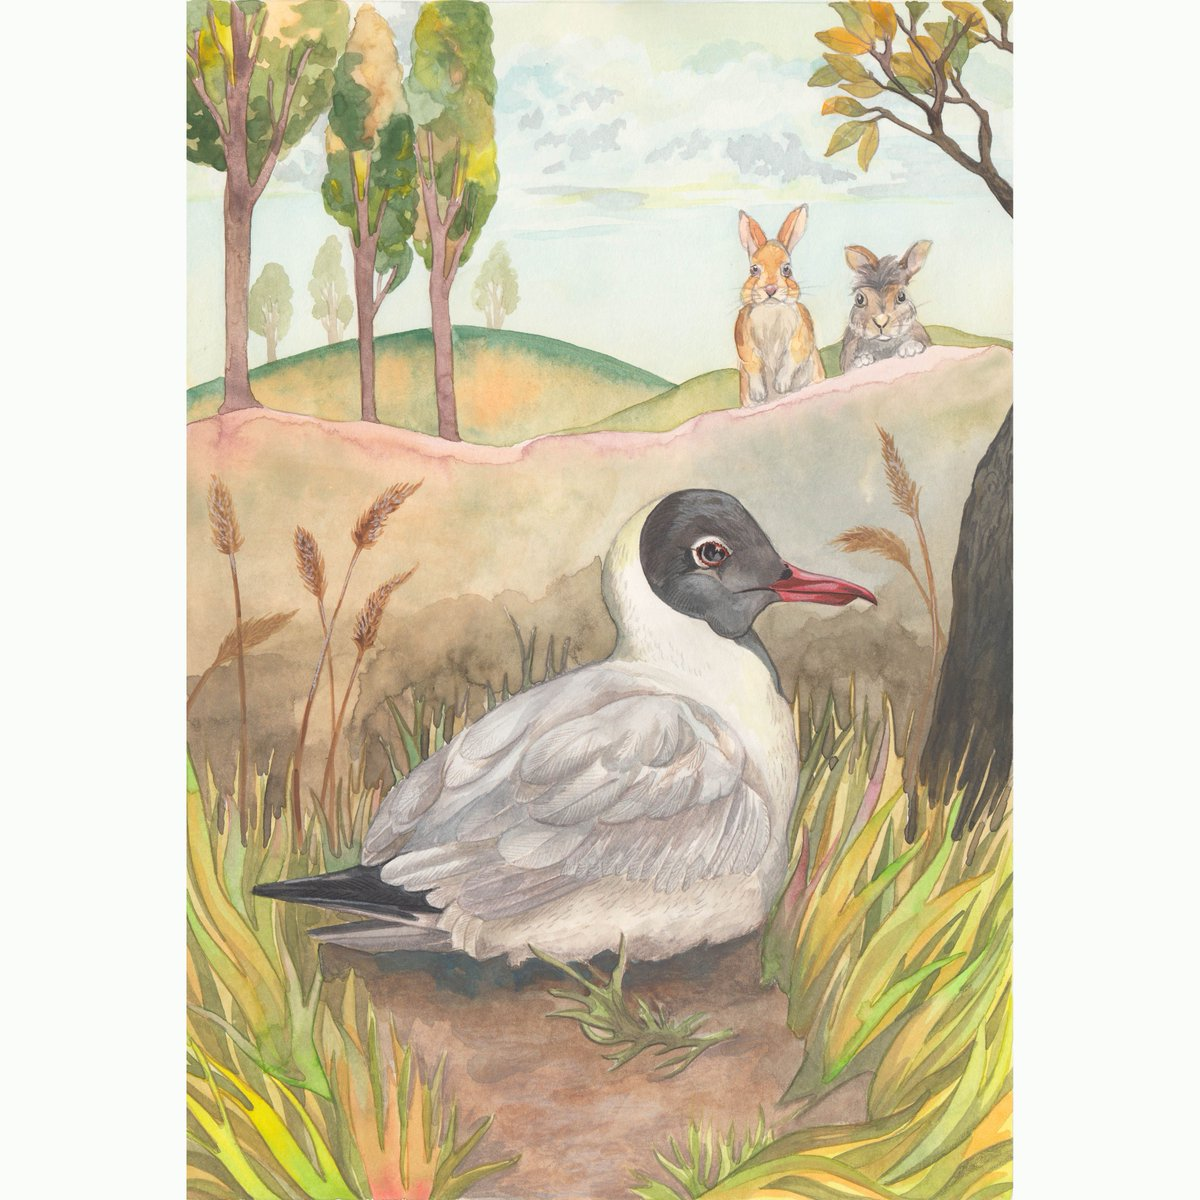 Well, I decided to add a bit more interest to this one. I think its an improvement. #birdart #blackheadedgull #illustrationart #watershipdown #kidlitart #childrensillustration #watercolorpainting #watercolorart<br>http://pic.twitter.com/Ut28PpvEhc